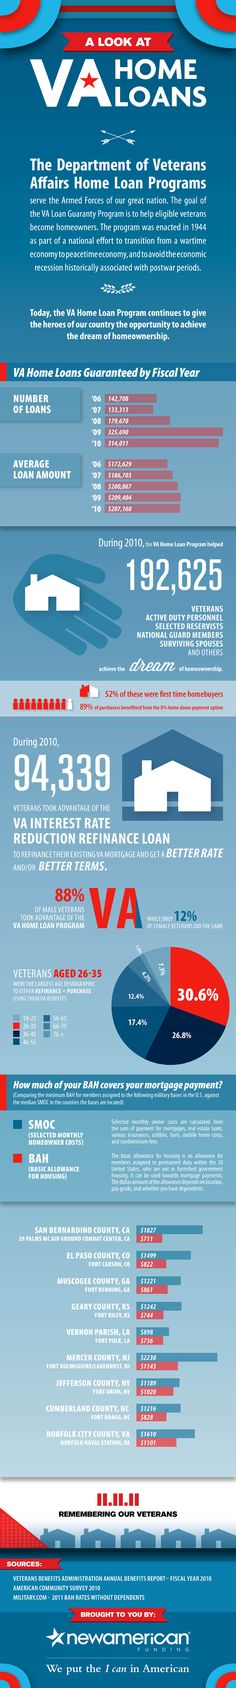 VA Home Loans for veterans and active-duty military and reservists.